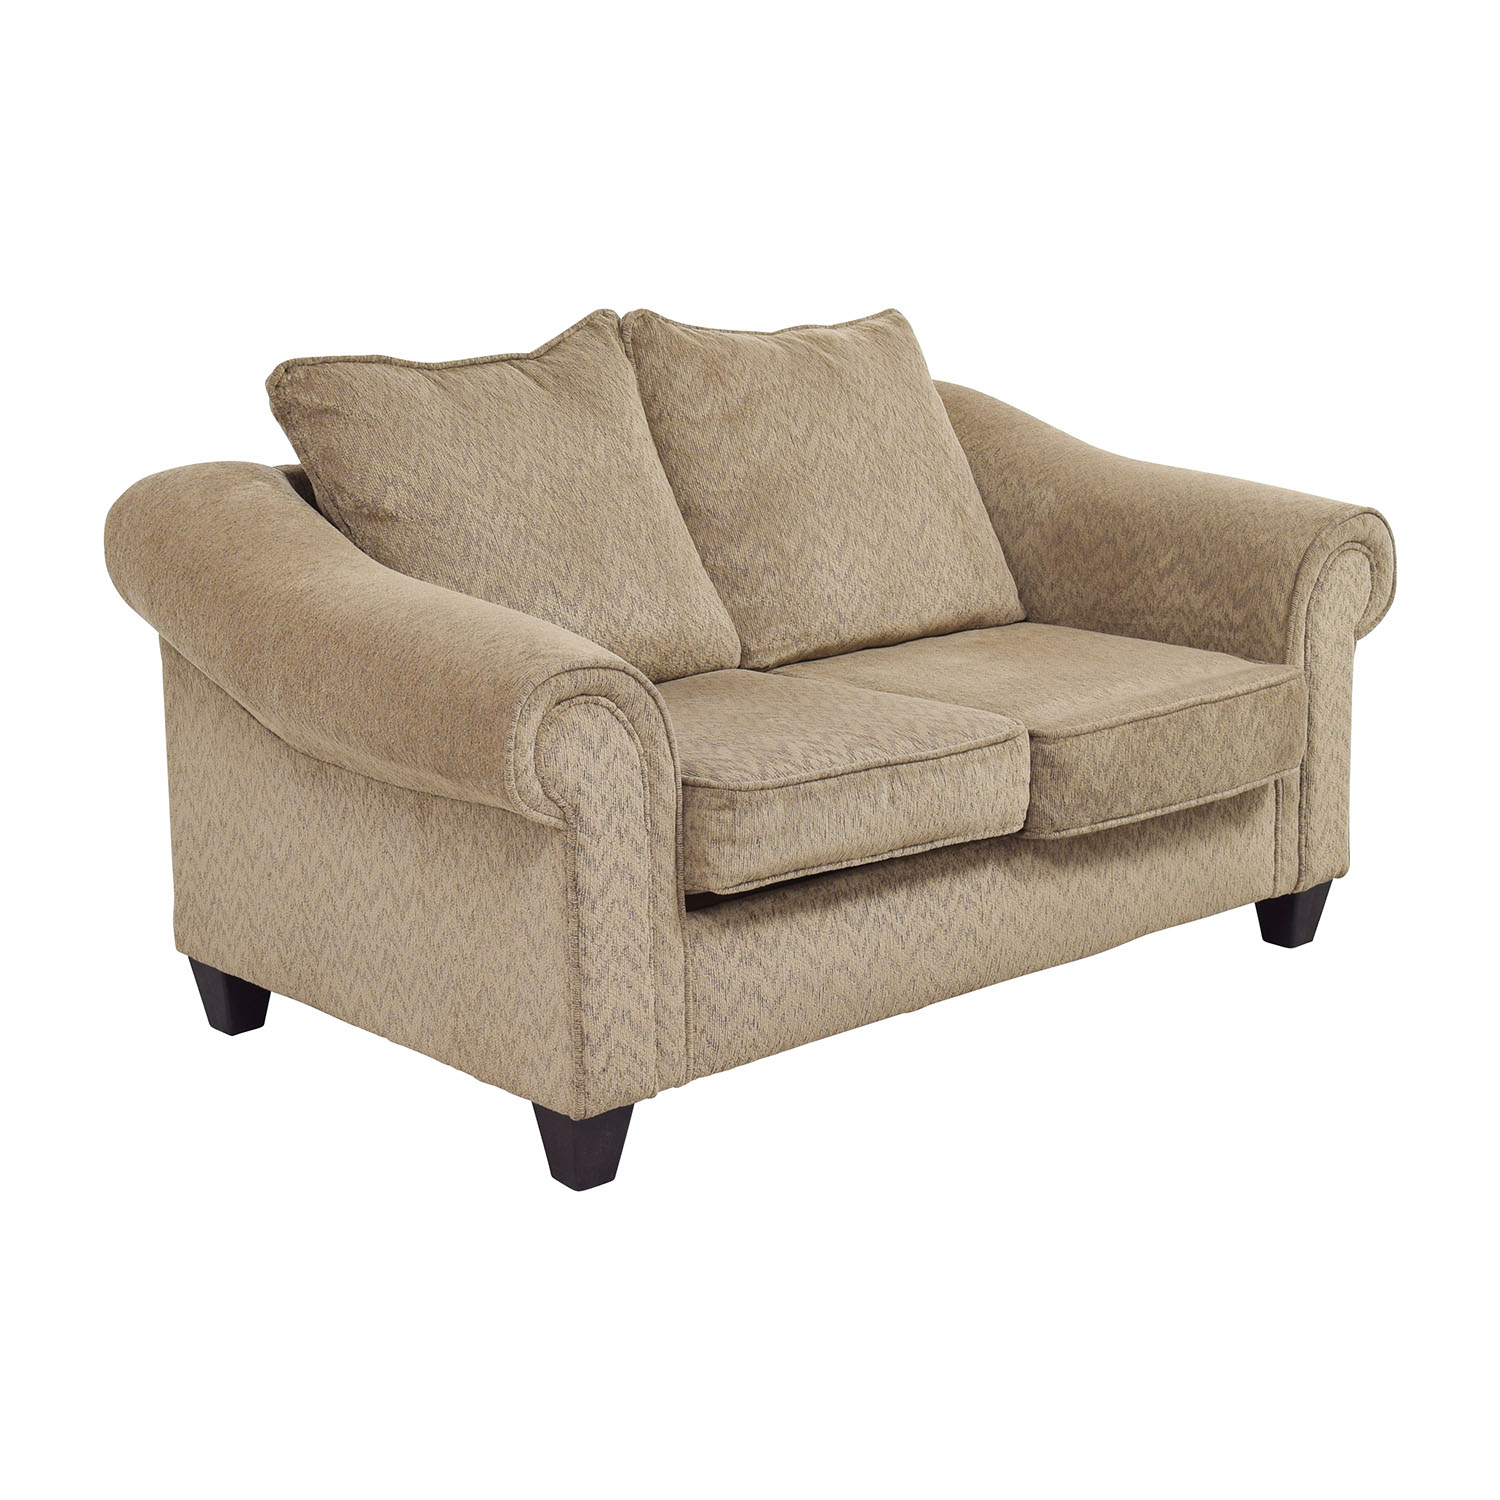 79% OFF Bob s Furniture Bob S Furniture Two Toned Brown